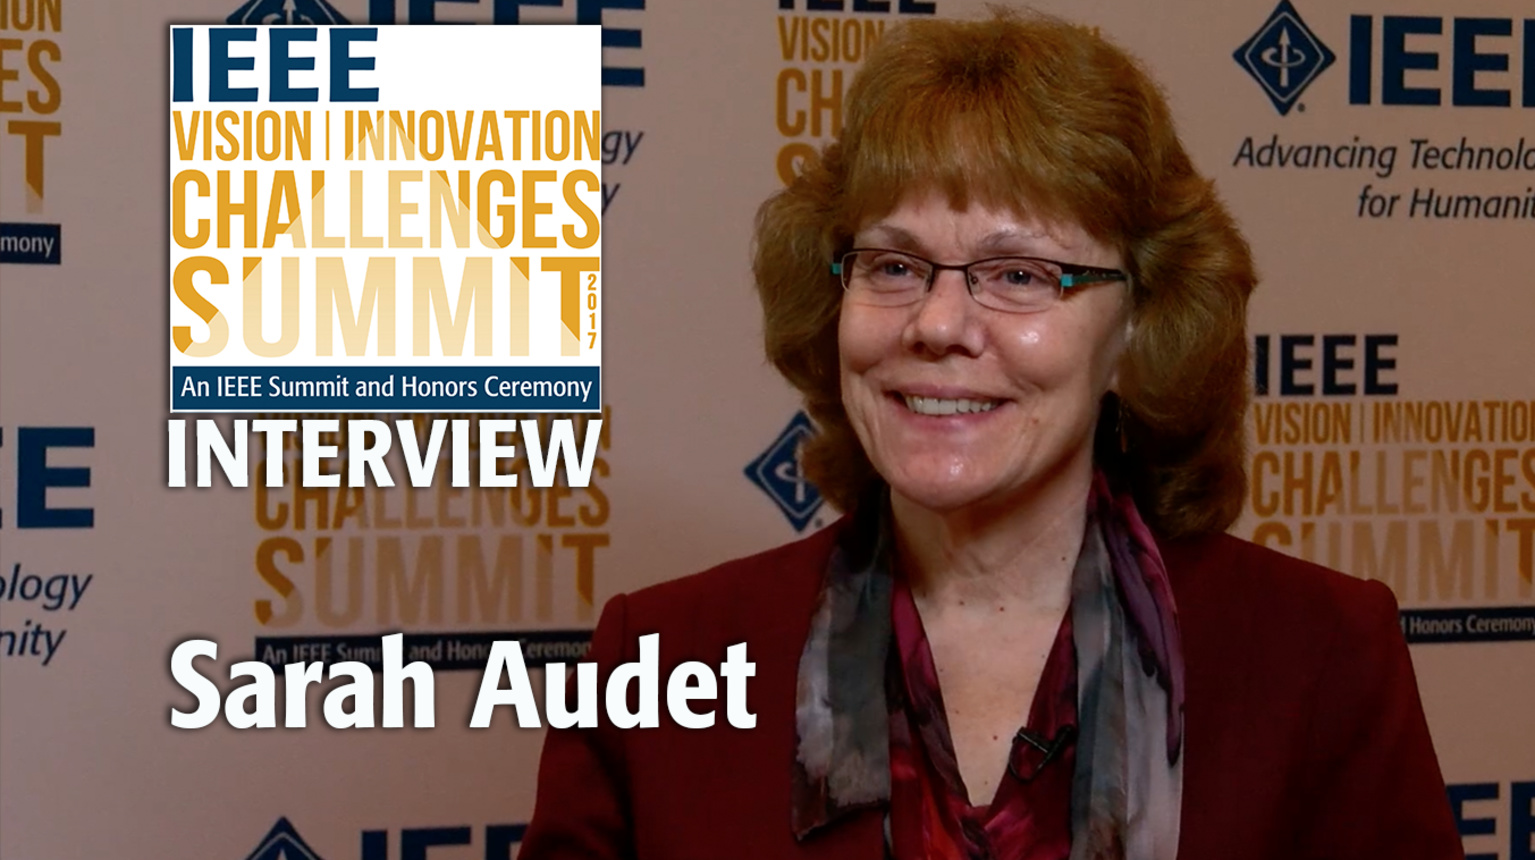 Interview with Sarah Audet - IEEE VIC Summit 2017